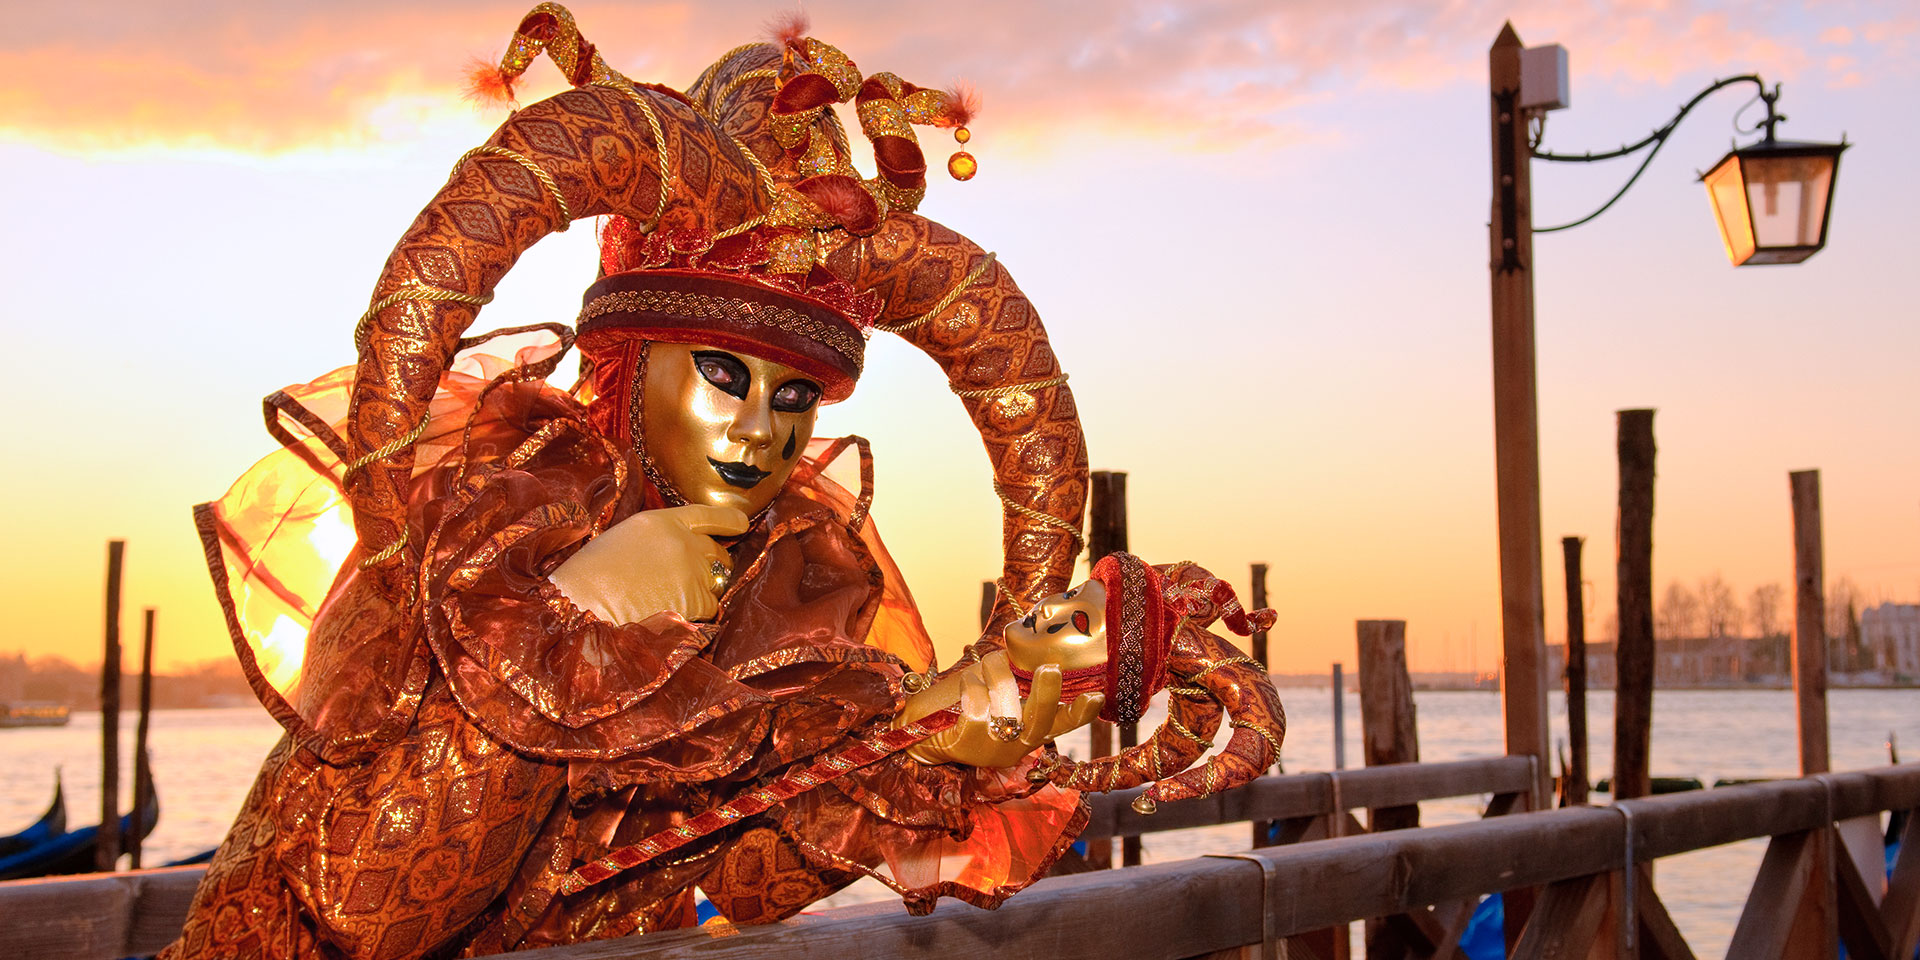 Get the lowdown on Carnevale in Venice. (Photo: Getty Images)